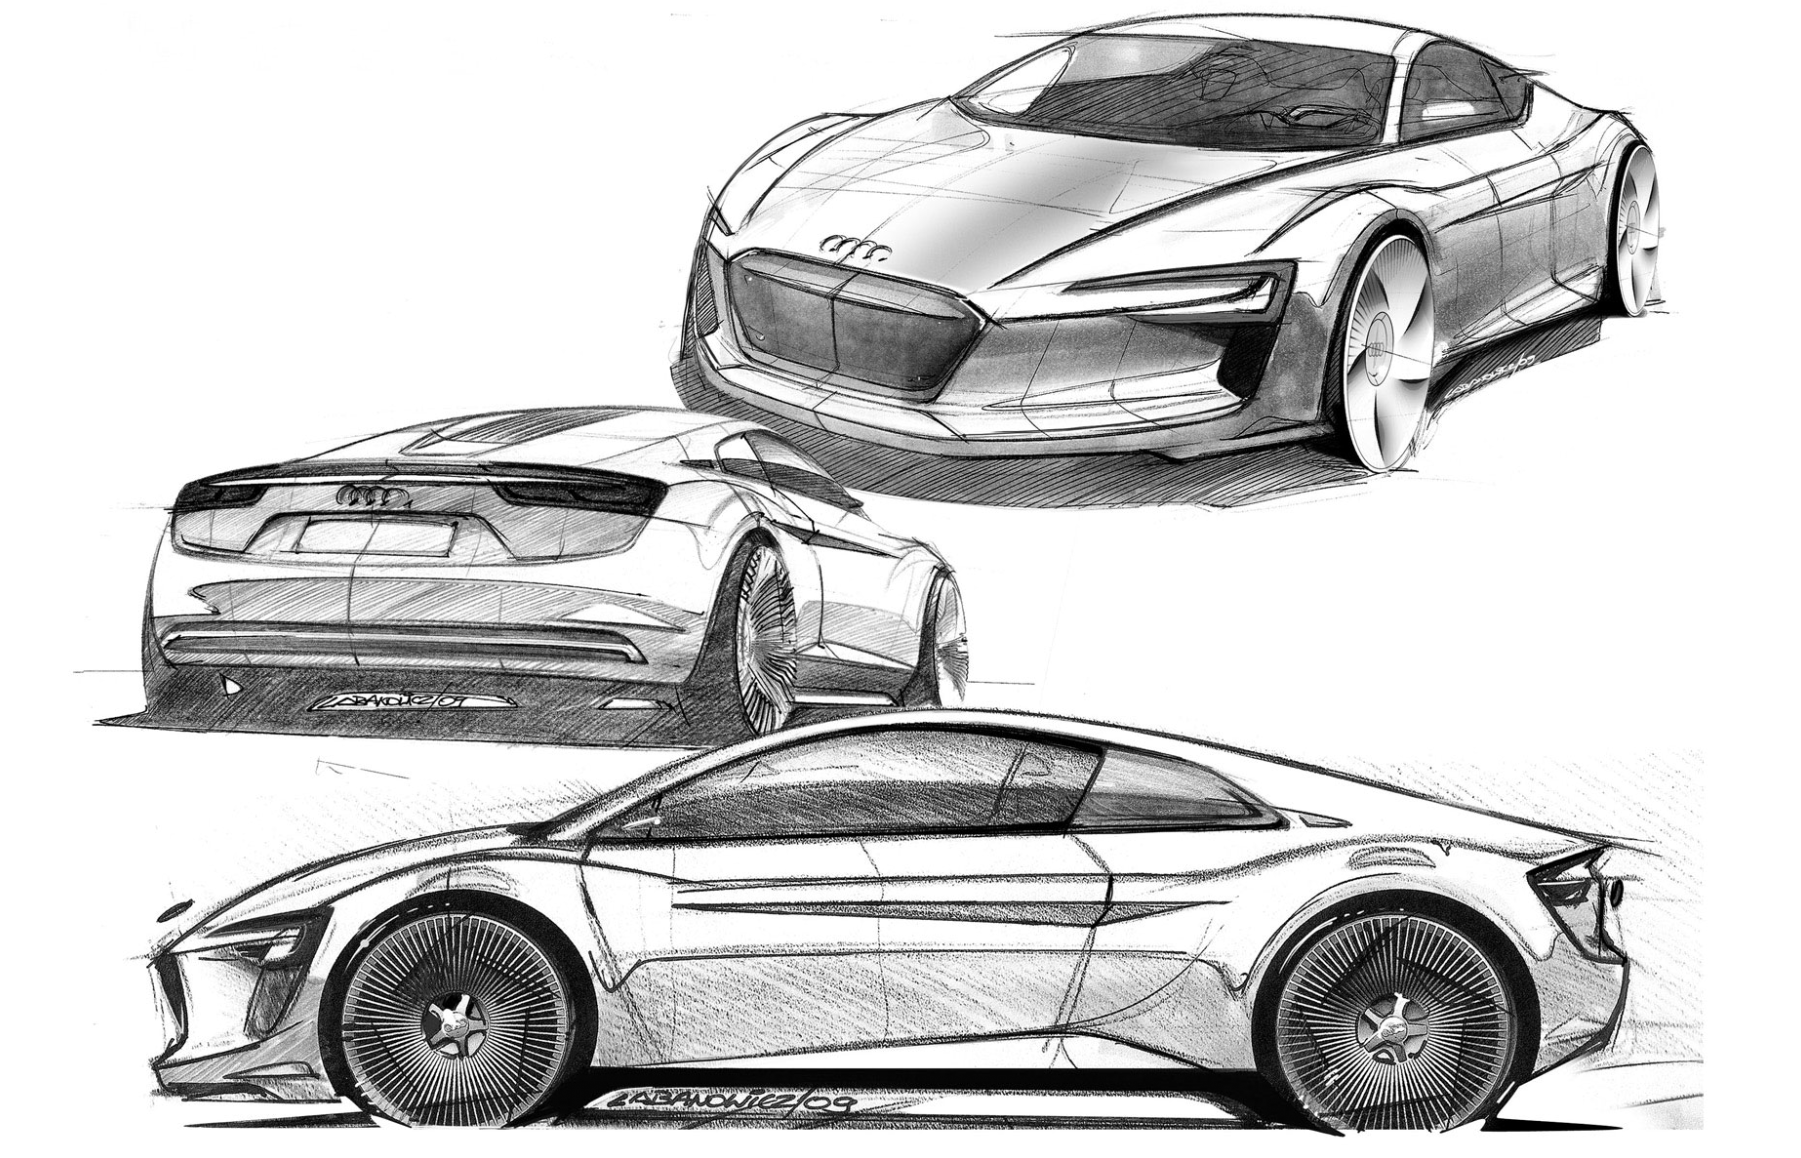 Audi Showcases Electric Sports Car AIChE - Audi car drawing